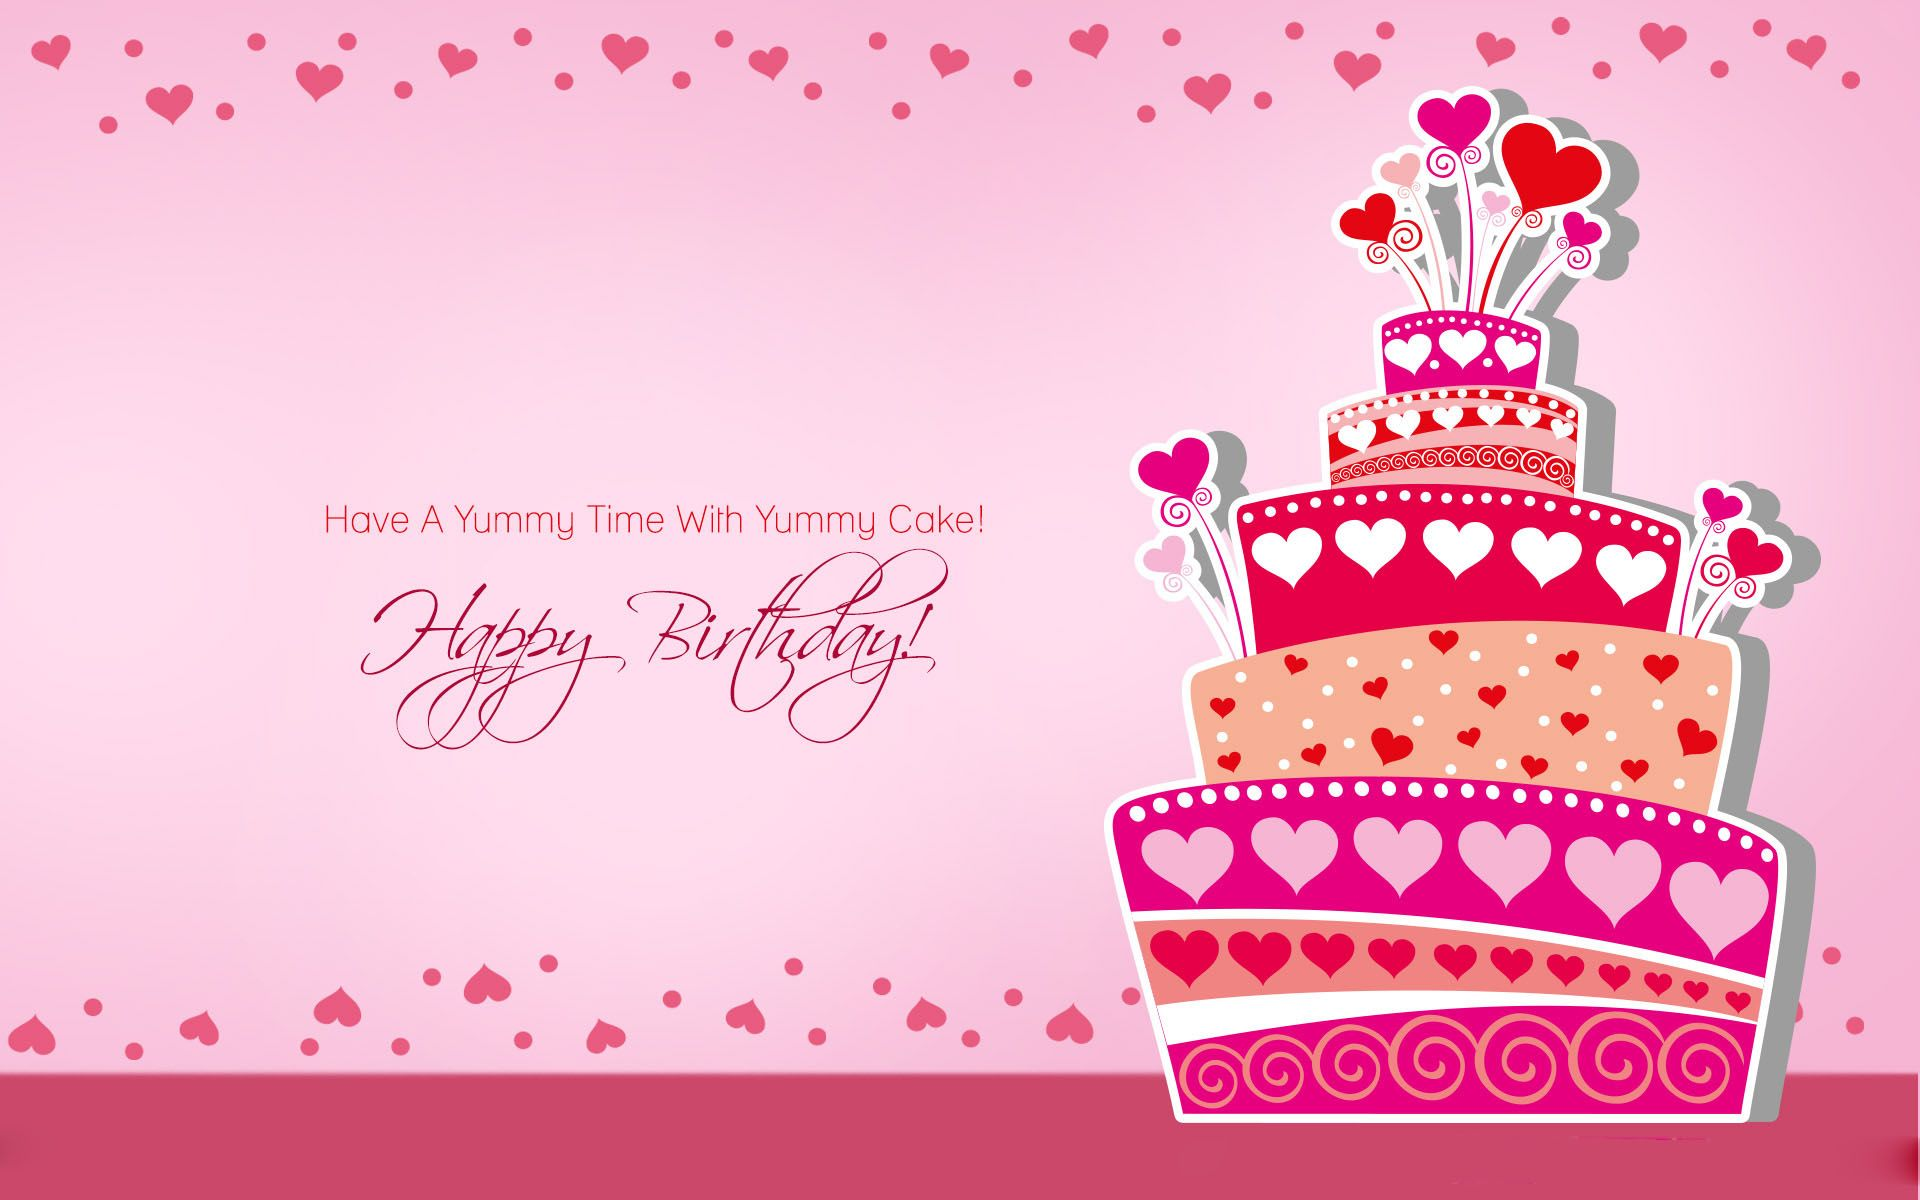 Wallpaper Happy Birthday 42 Wallpapers – Adorable Wallpapers